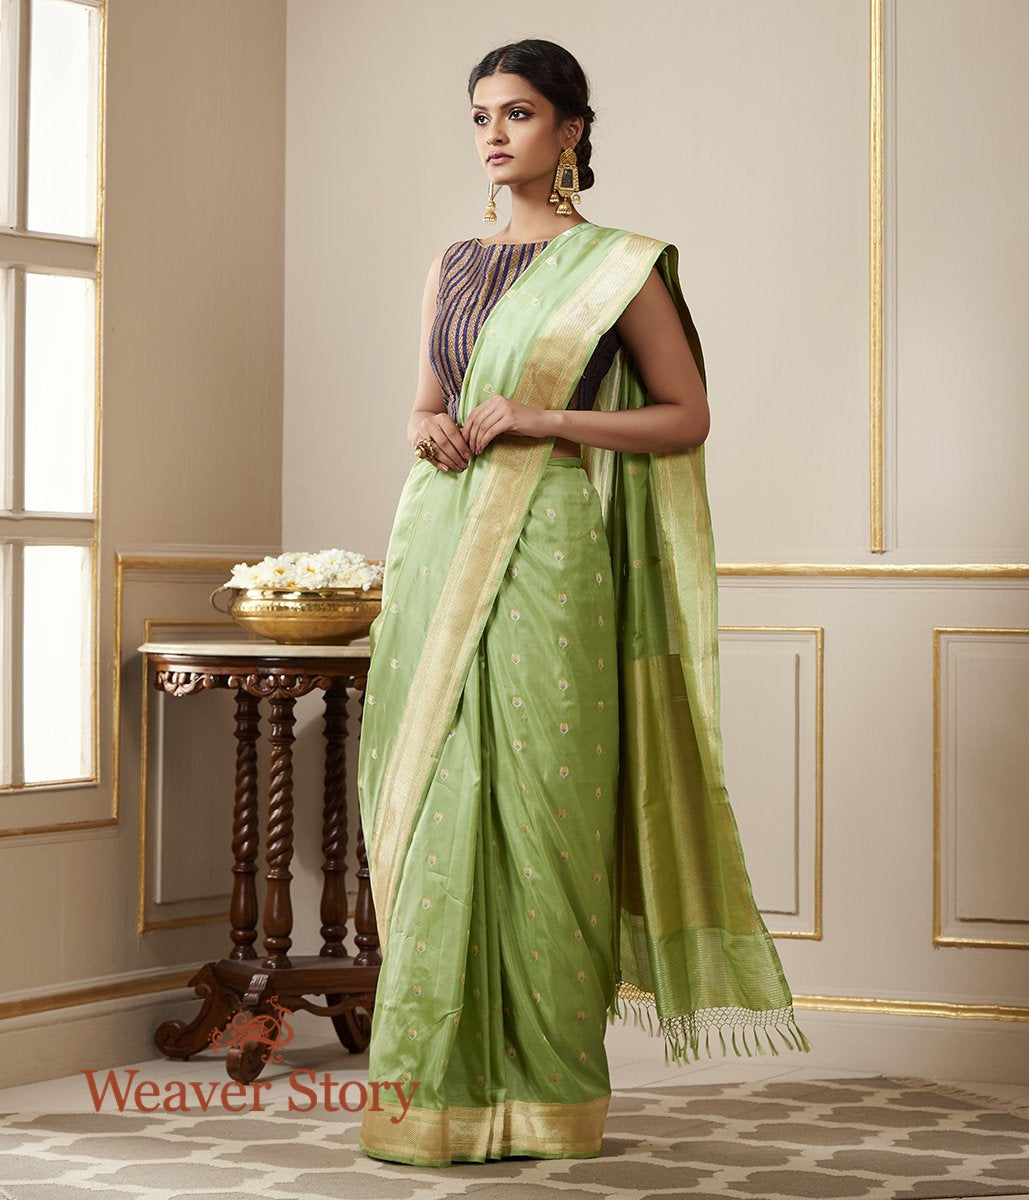 Handwoven Green Kadhwa Boota Saree with Blue Meenakari